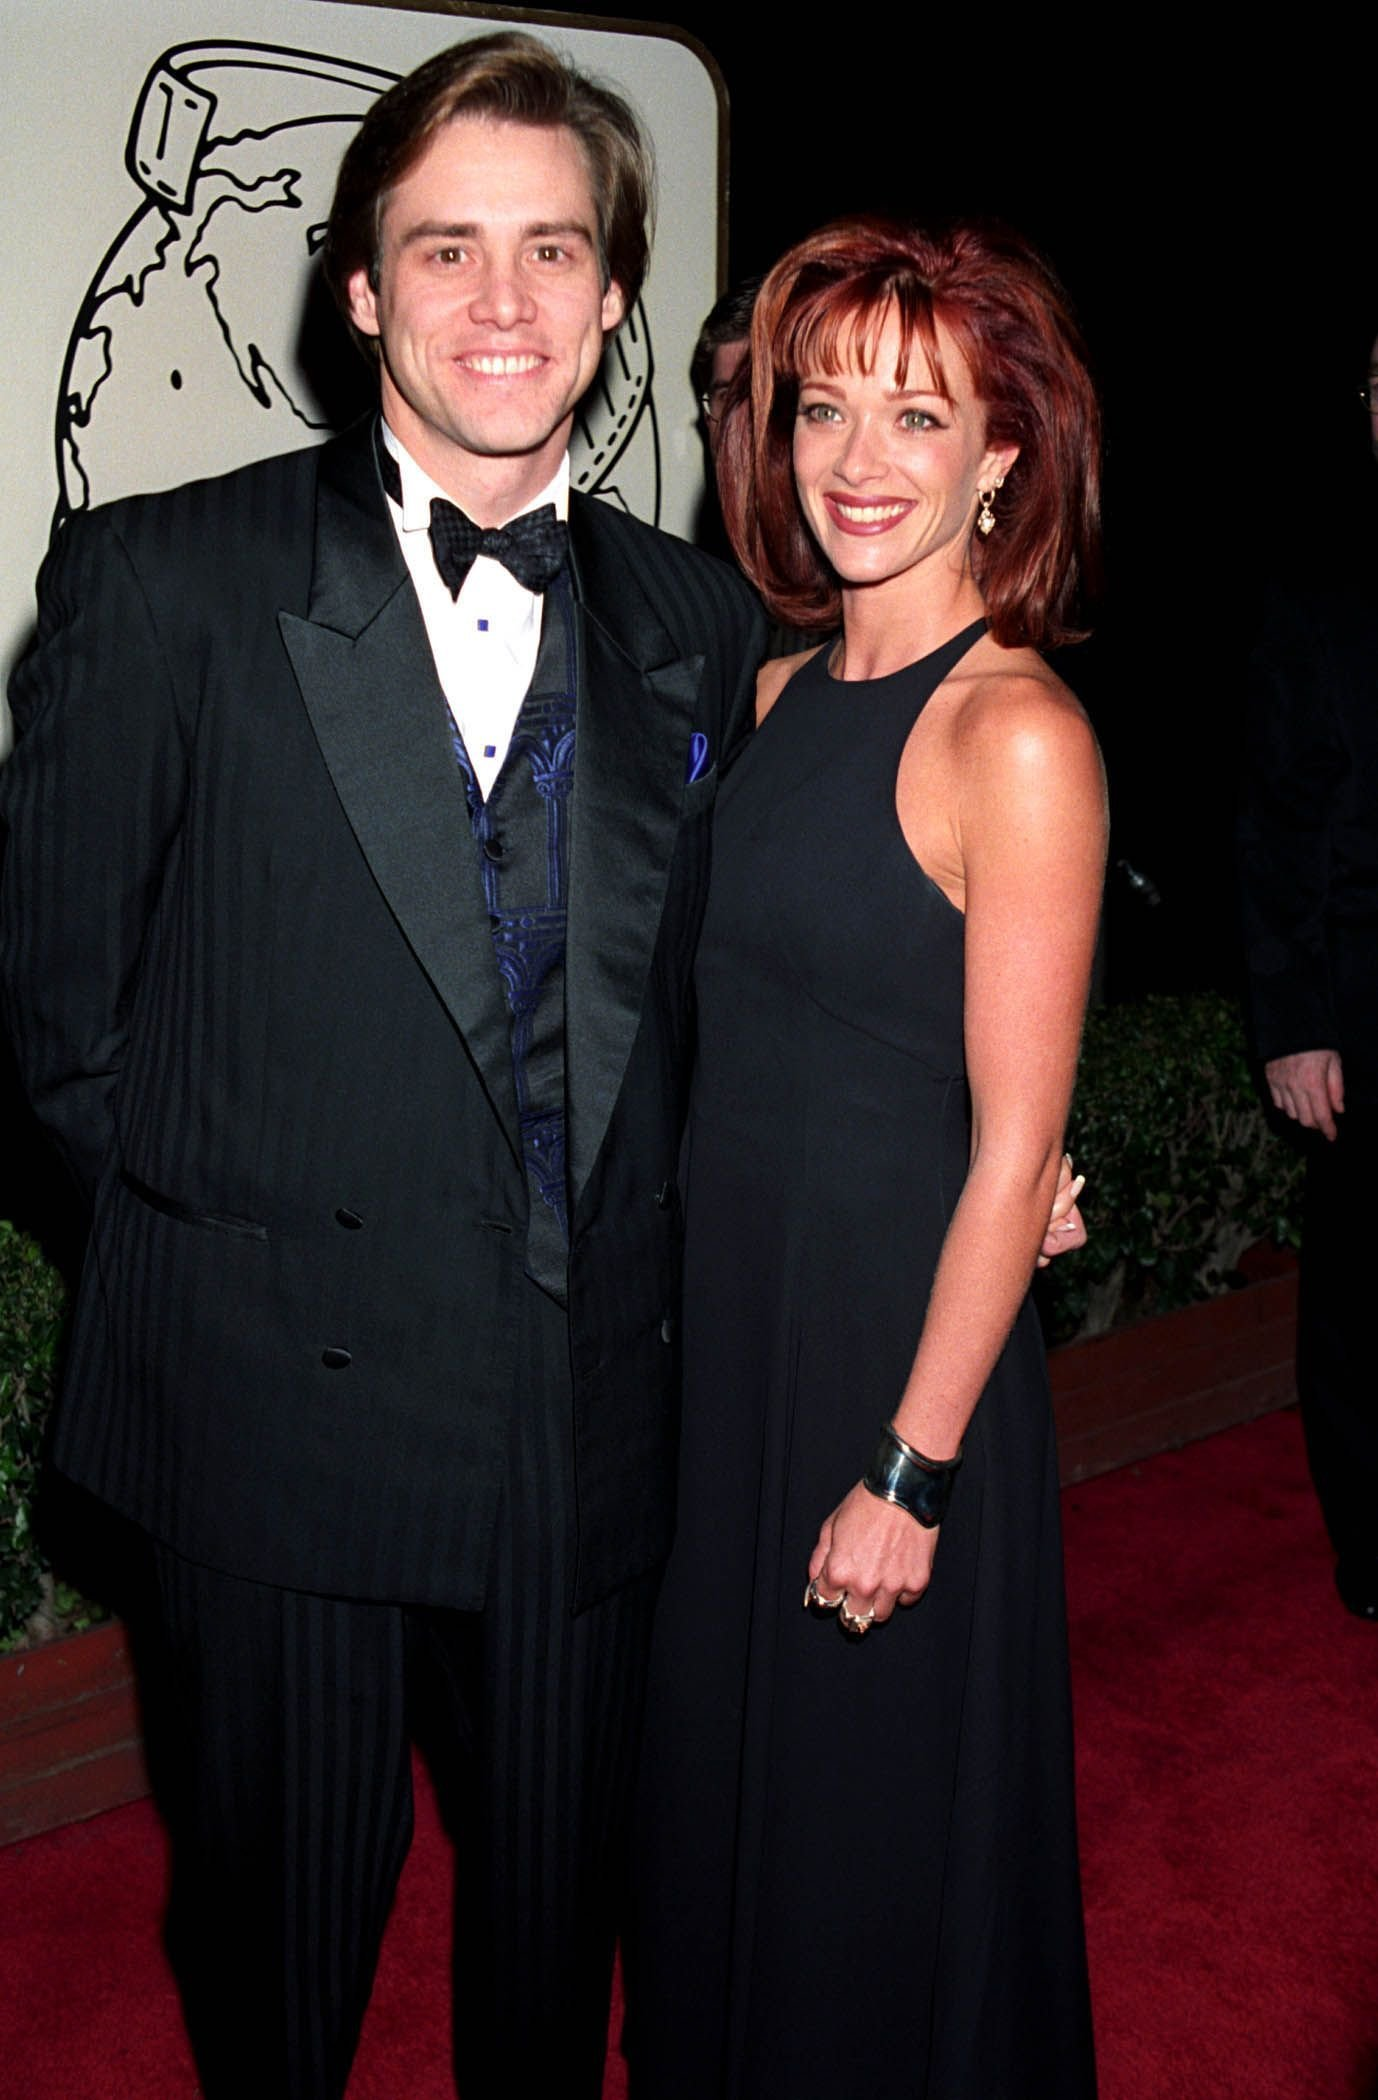 Jim Carrey and Lauren Holly pose for the camera during 1995 Golden Globe Awards. | Source: Getty Images